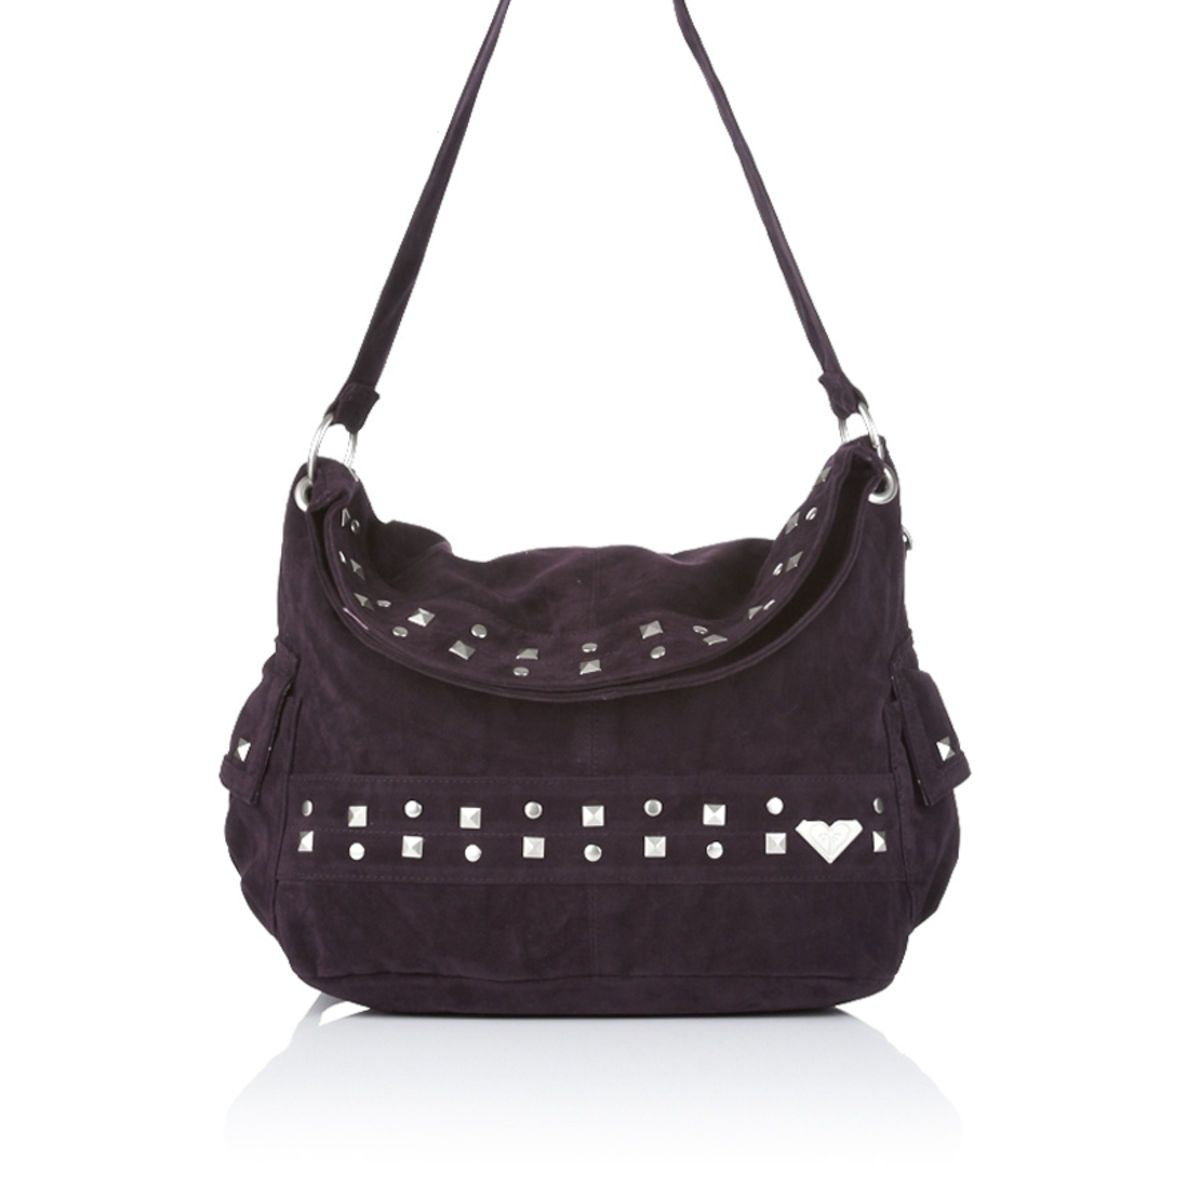 Roxy Hurray Hand Bag Gloxinia Free Uk Delivery On All Orders